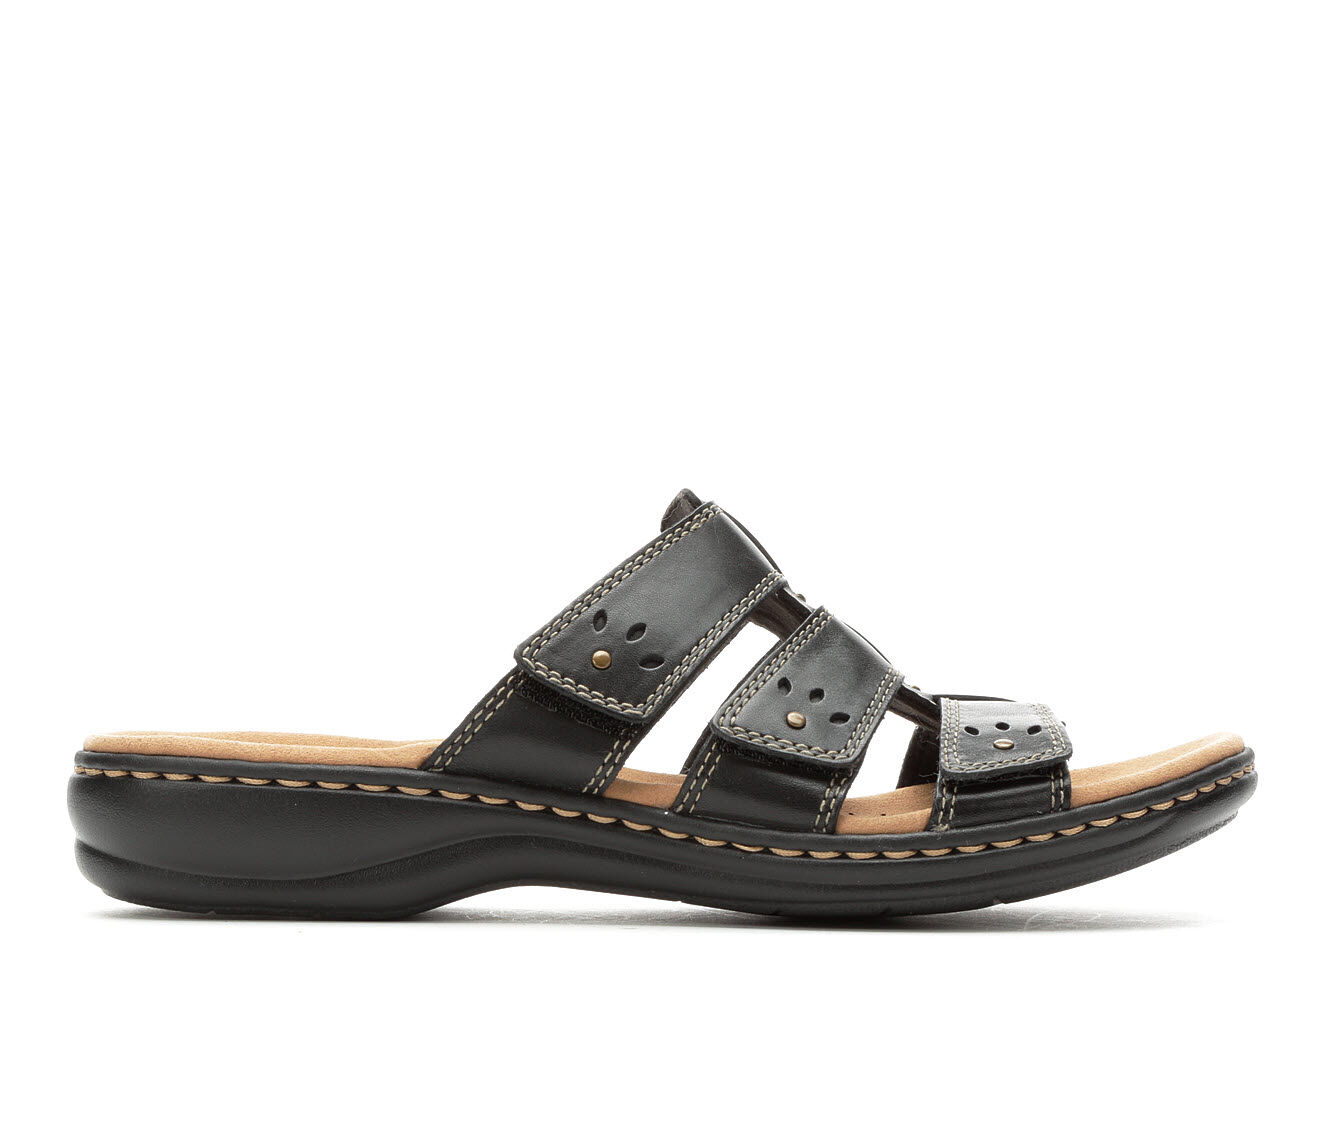 Women's Clarks Leisa Spring Sandals Black